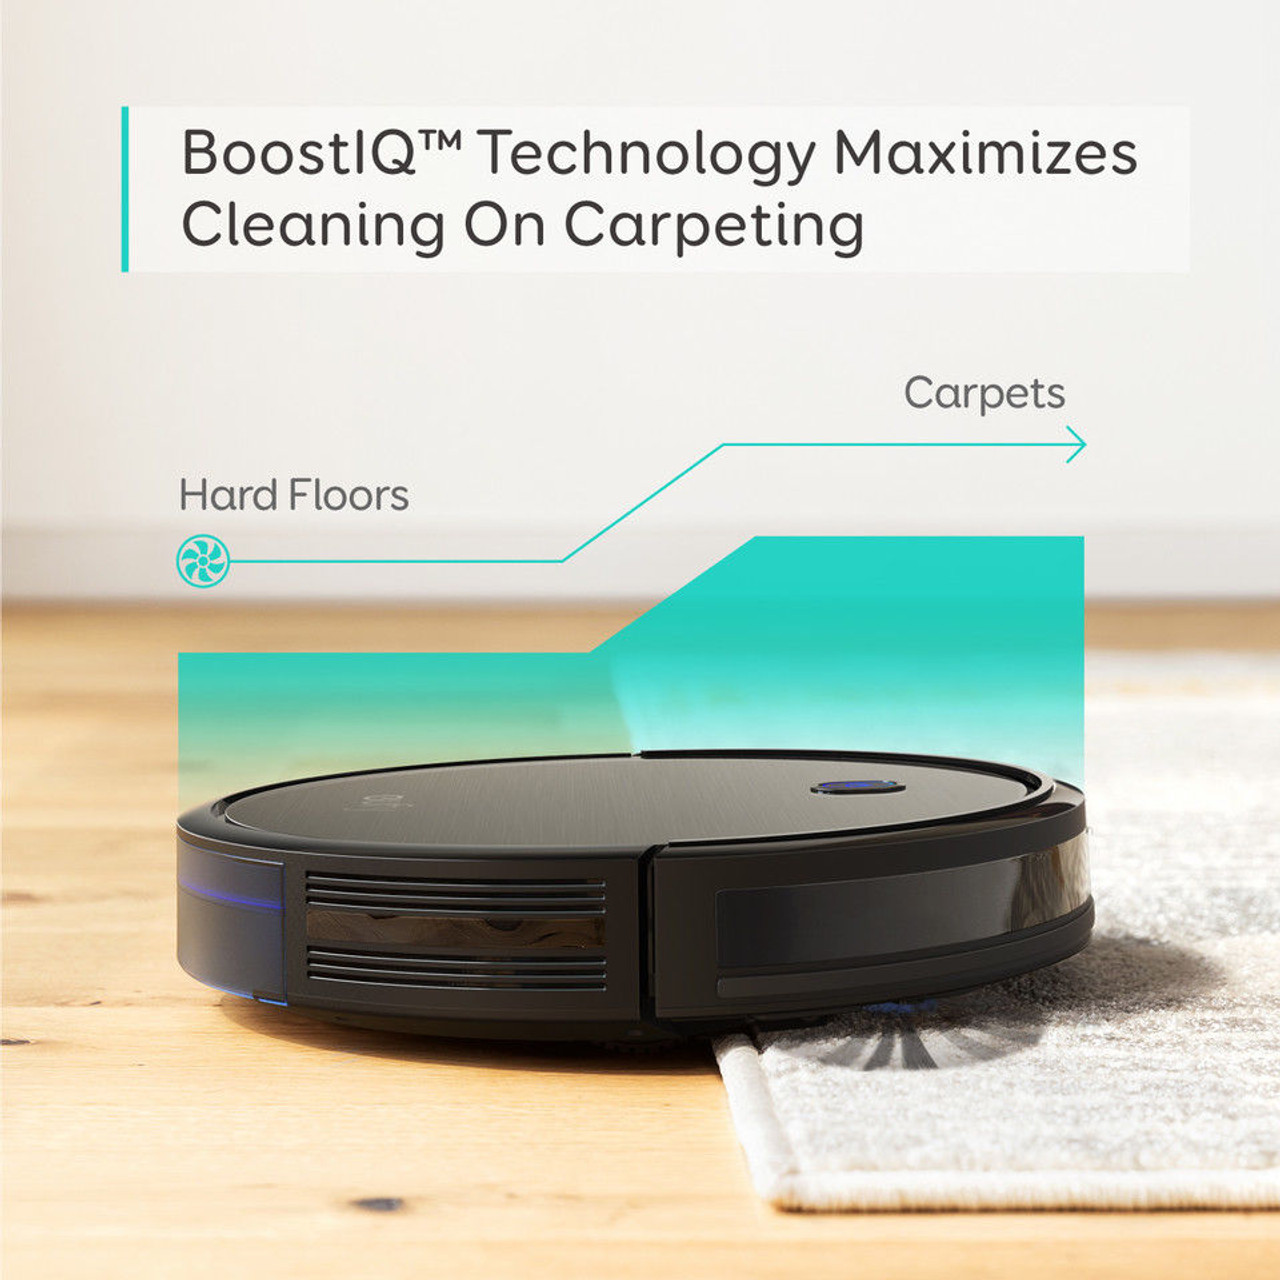 Eufy Robovac 11s Super Slim Robot Vacuum with Boost IQ Technology